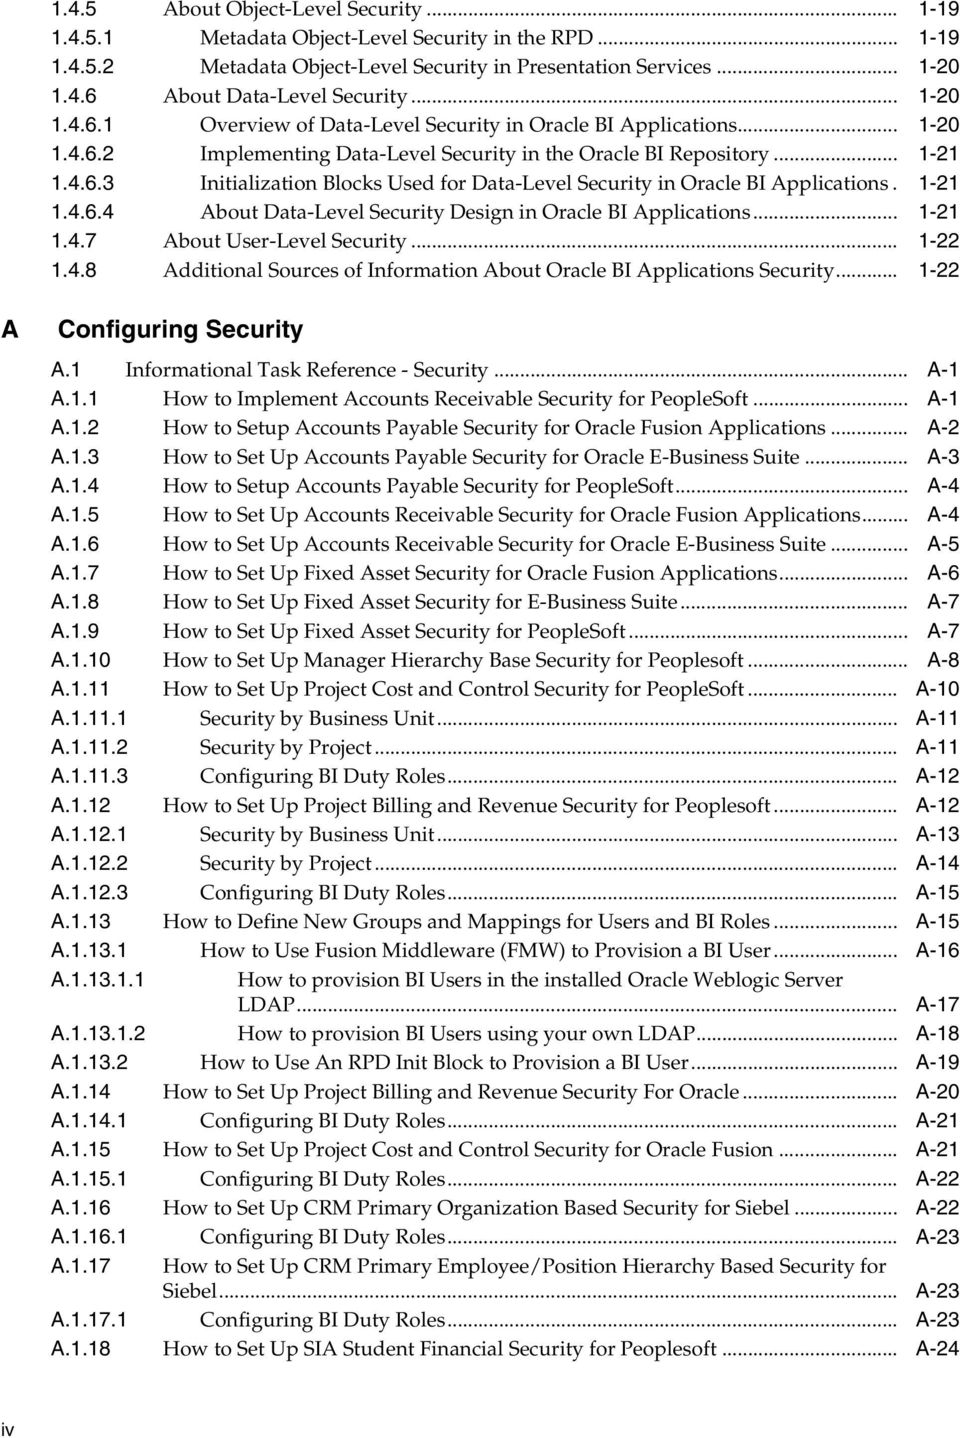 1-21 1.4.6.4 About Data-Level Security Design in Oracle BI Applications... 1-21 1.4.7 About User-Level Security... 1-22 1.4.8 Additional Sources of Information About Oracle BI Applications Security.